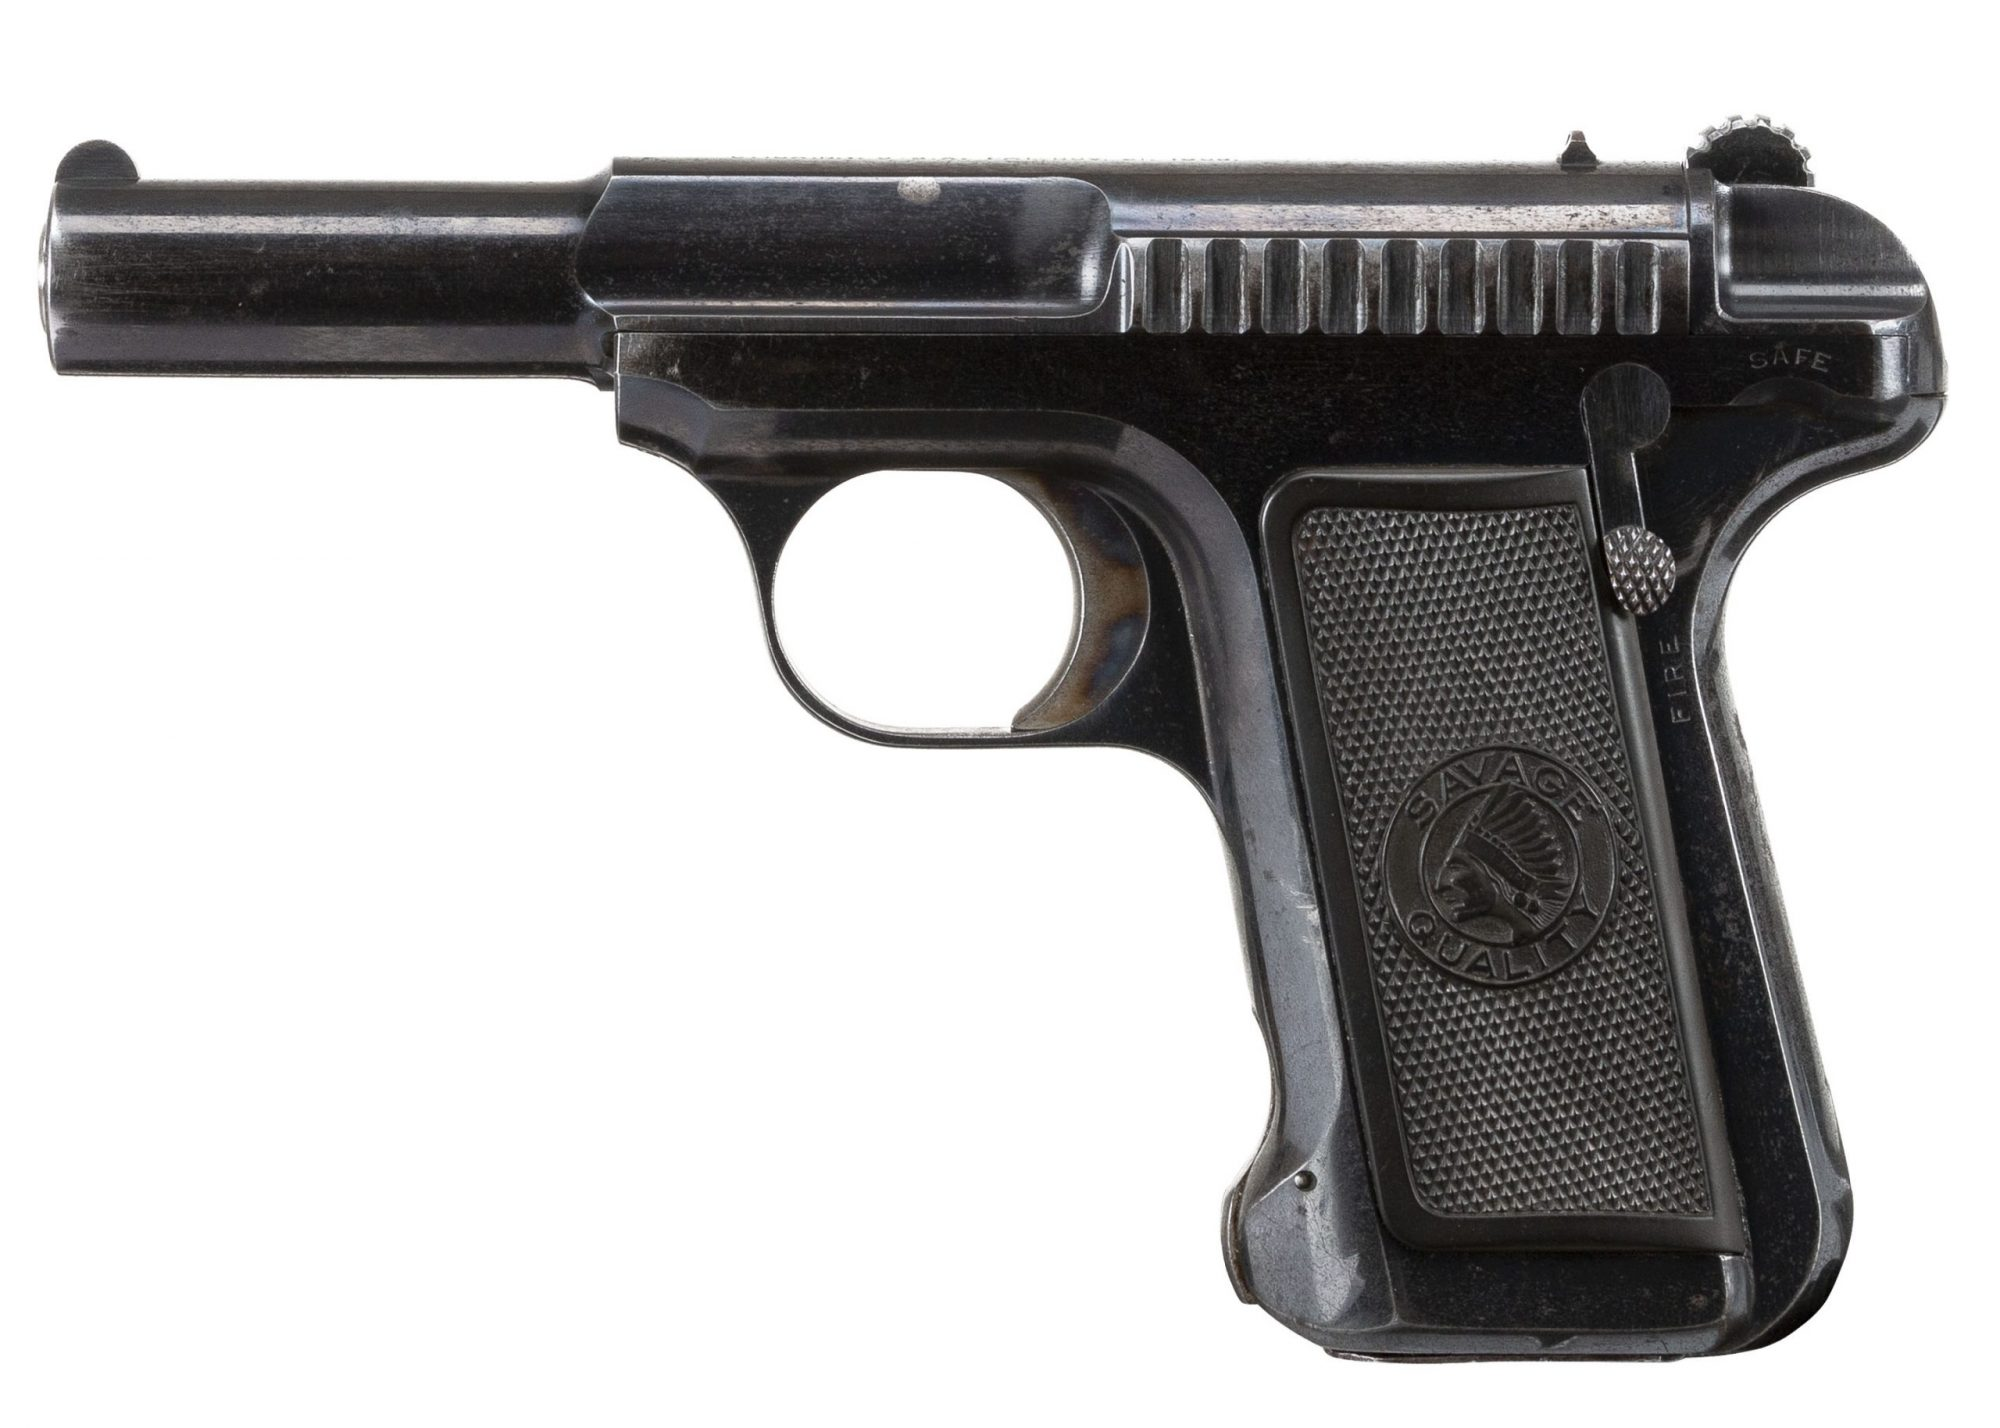 Photo of a Savage Model 1907 in .32 ACP, for sale by Turnbull Restoration of Bloomfield, NY